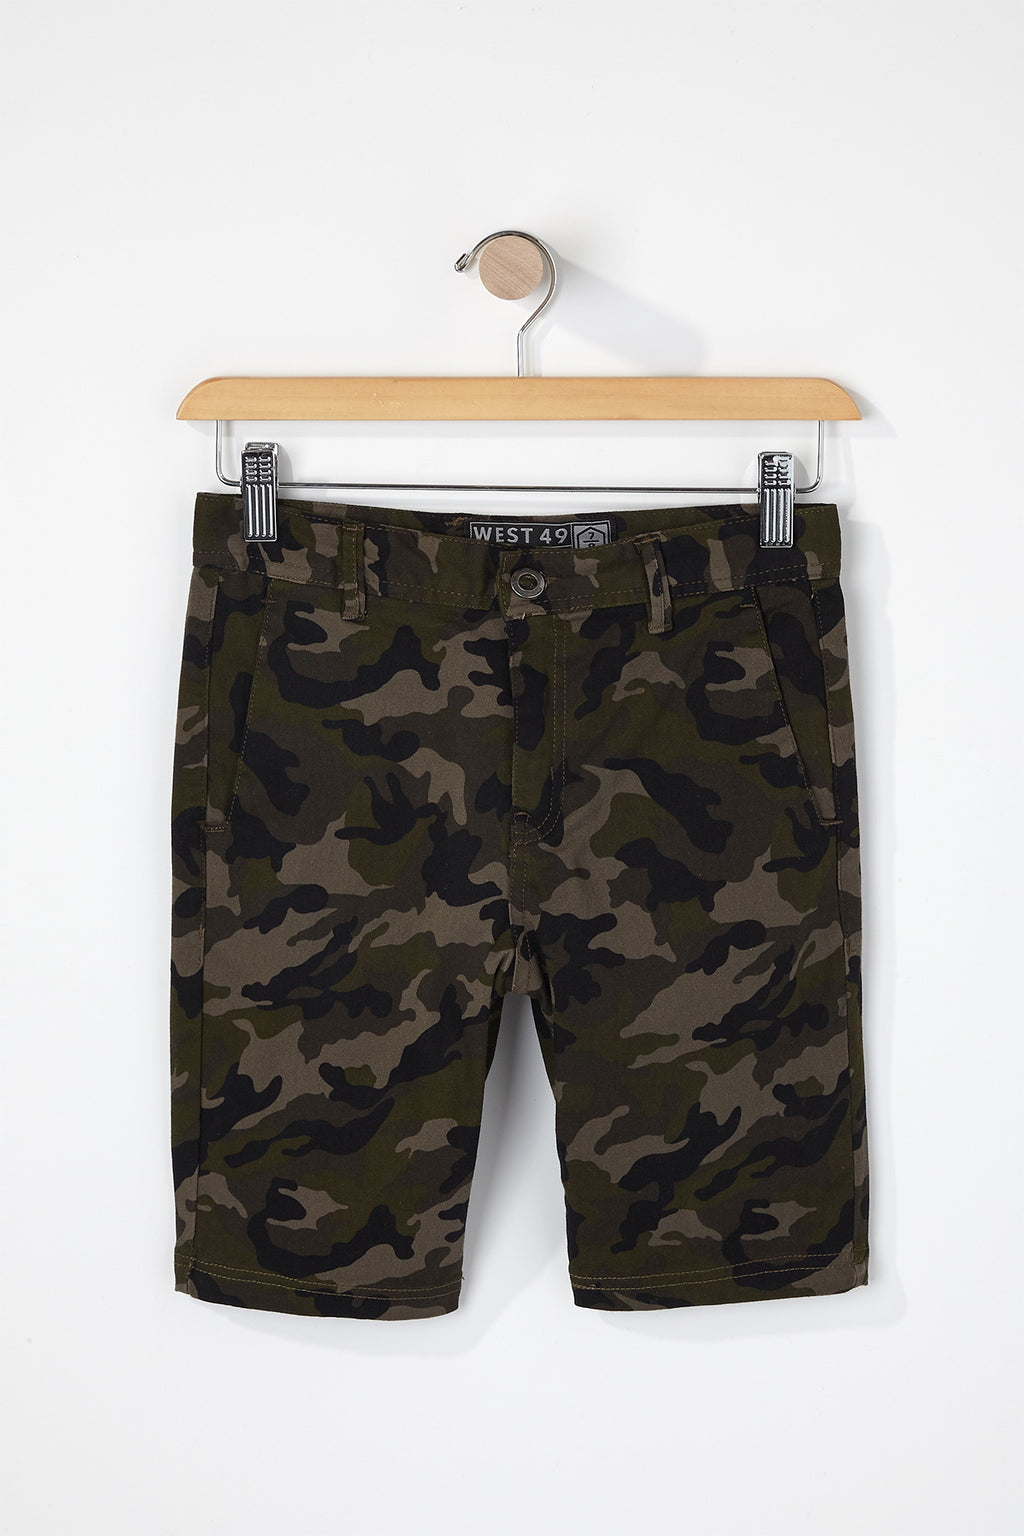 West49 Boys Camo Chino Shorts